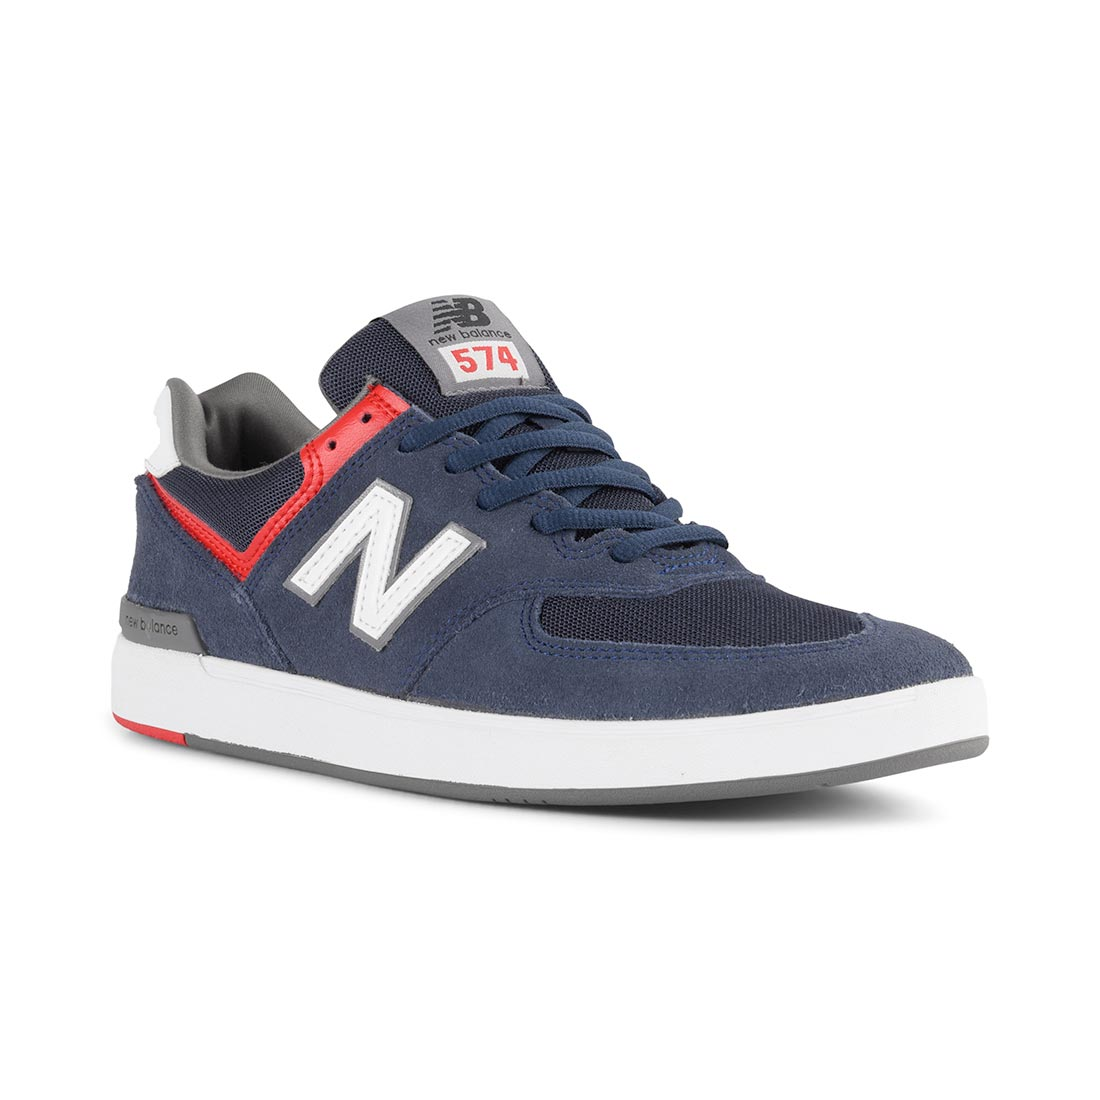 74a76b3d646df New Balance All Coasts 574 Shoes – Navy / White